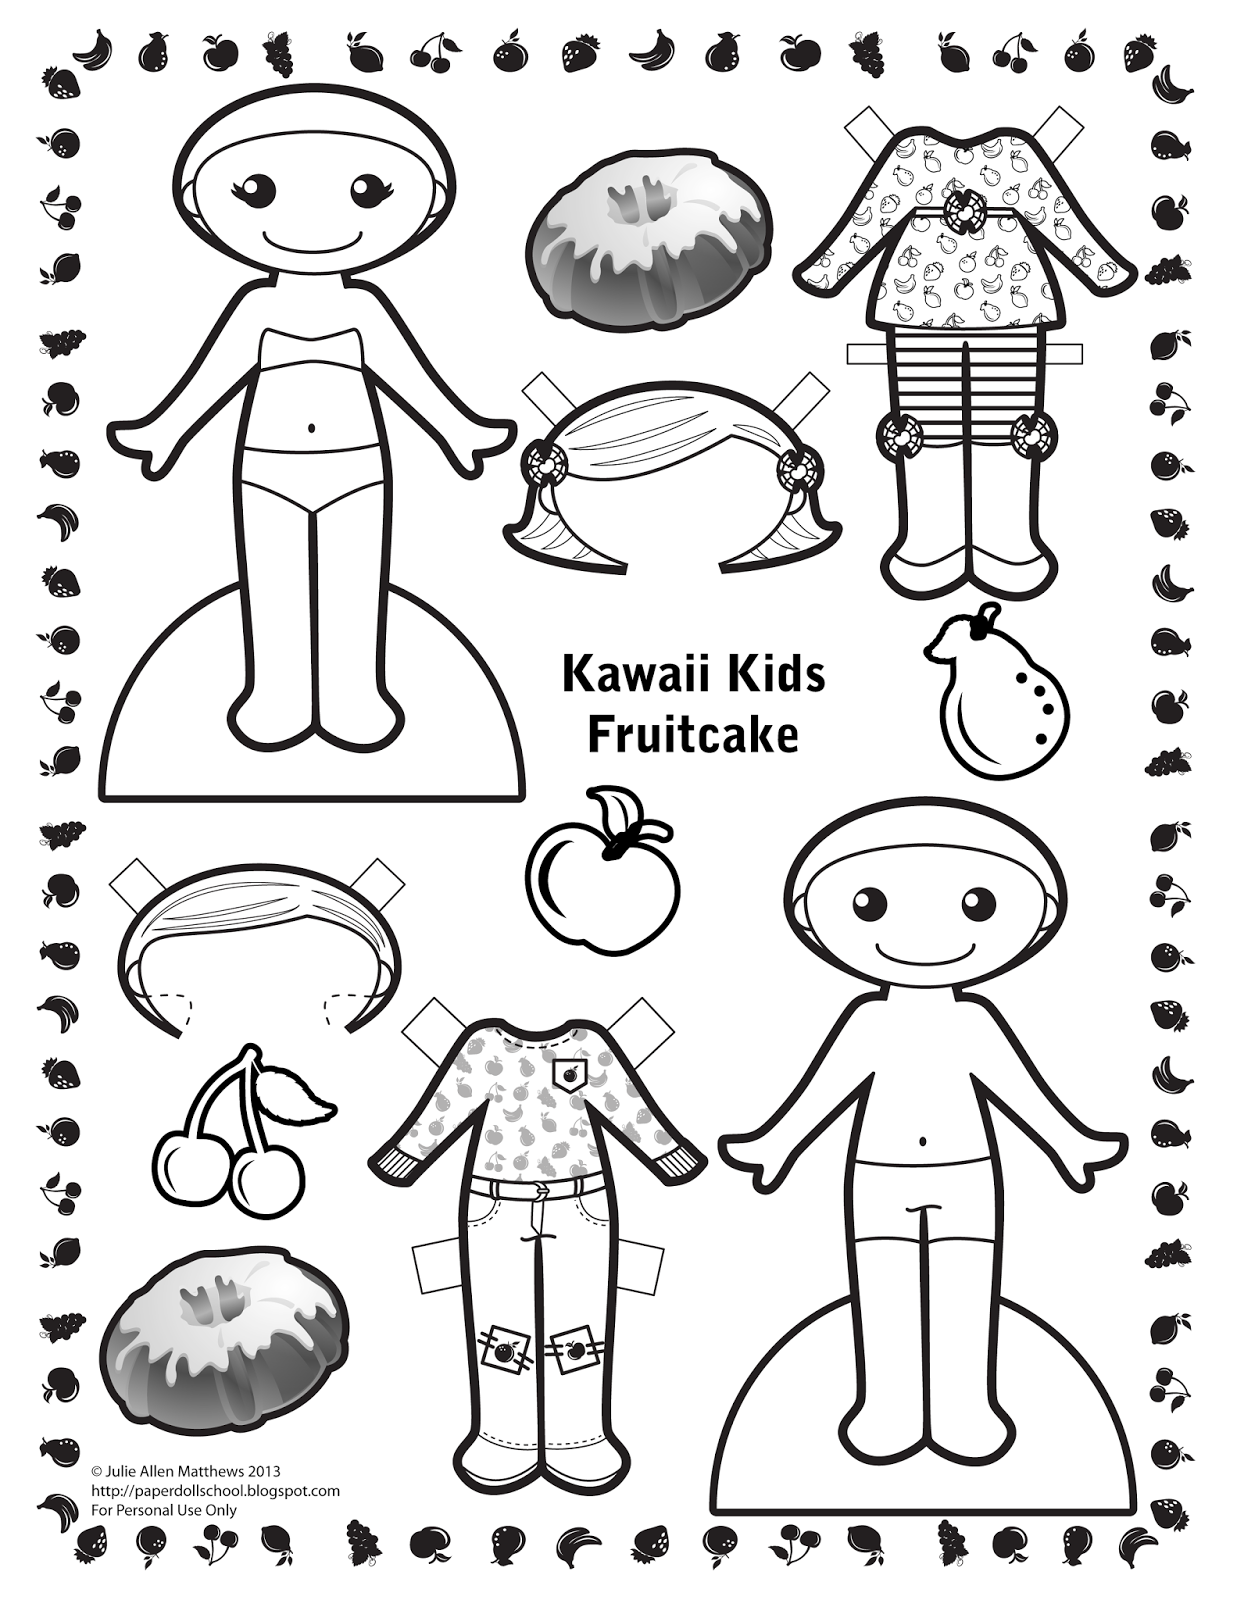 Paper Doll School Kawaii Kids 27